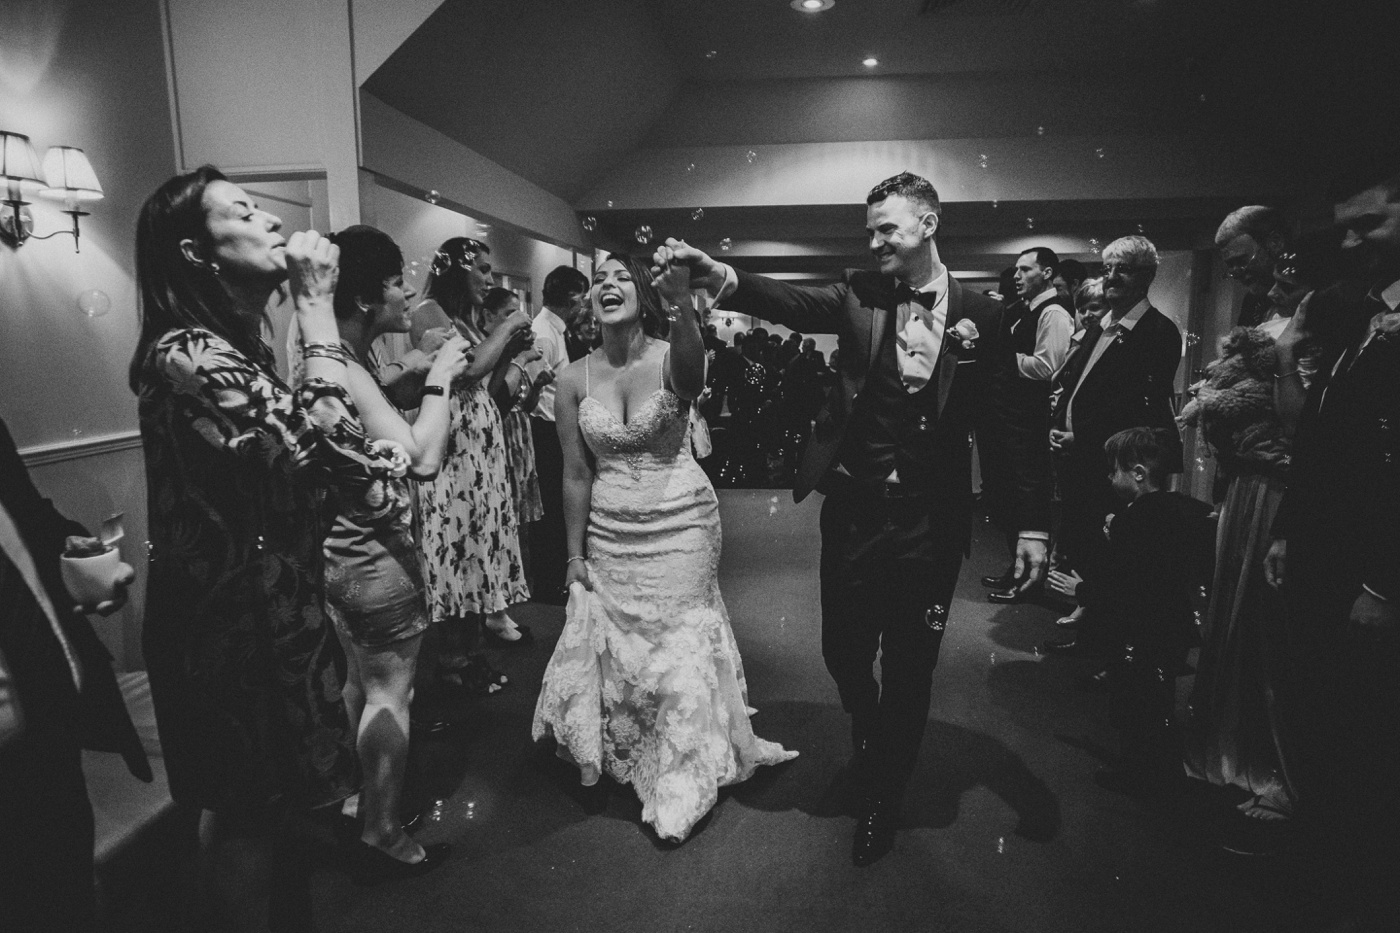 wesleybianca_dandenongs-sherbrooke-poets-lane-wedding_melbourne-quirky-fun-candid-wedding-photography_92